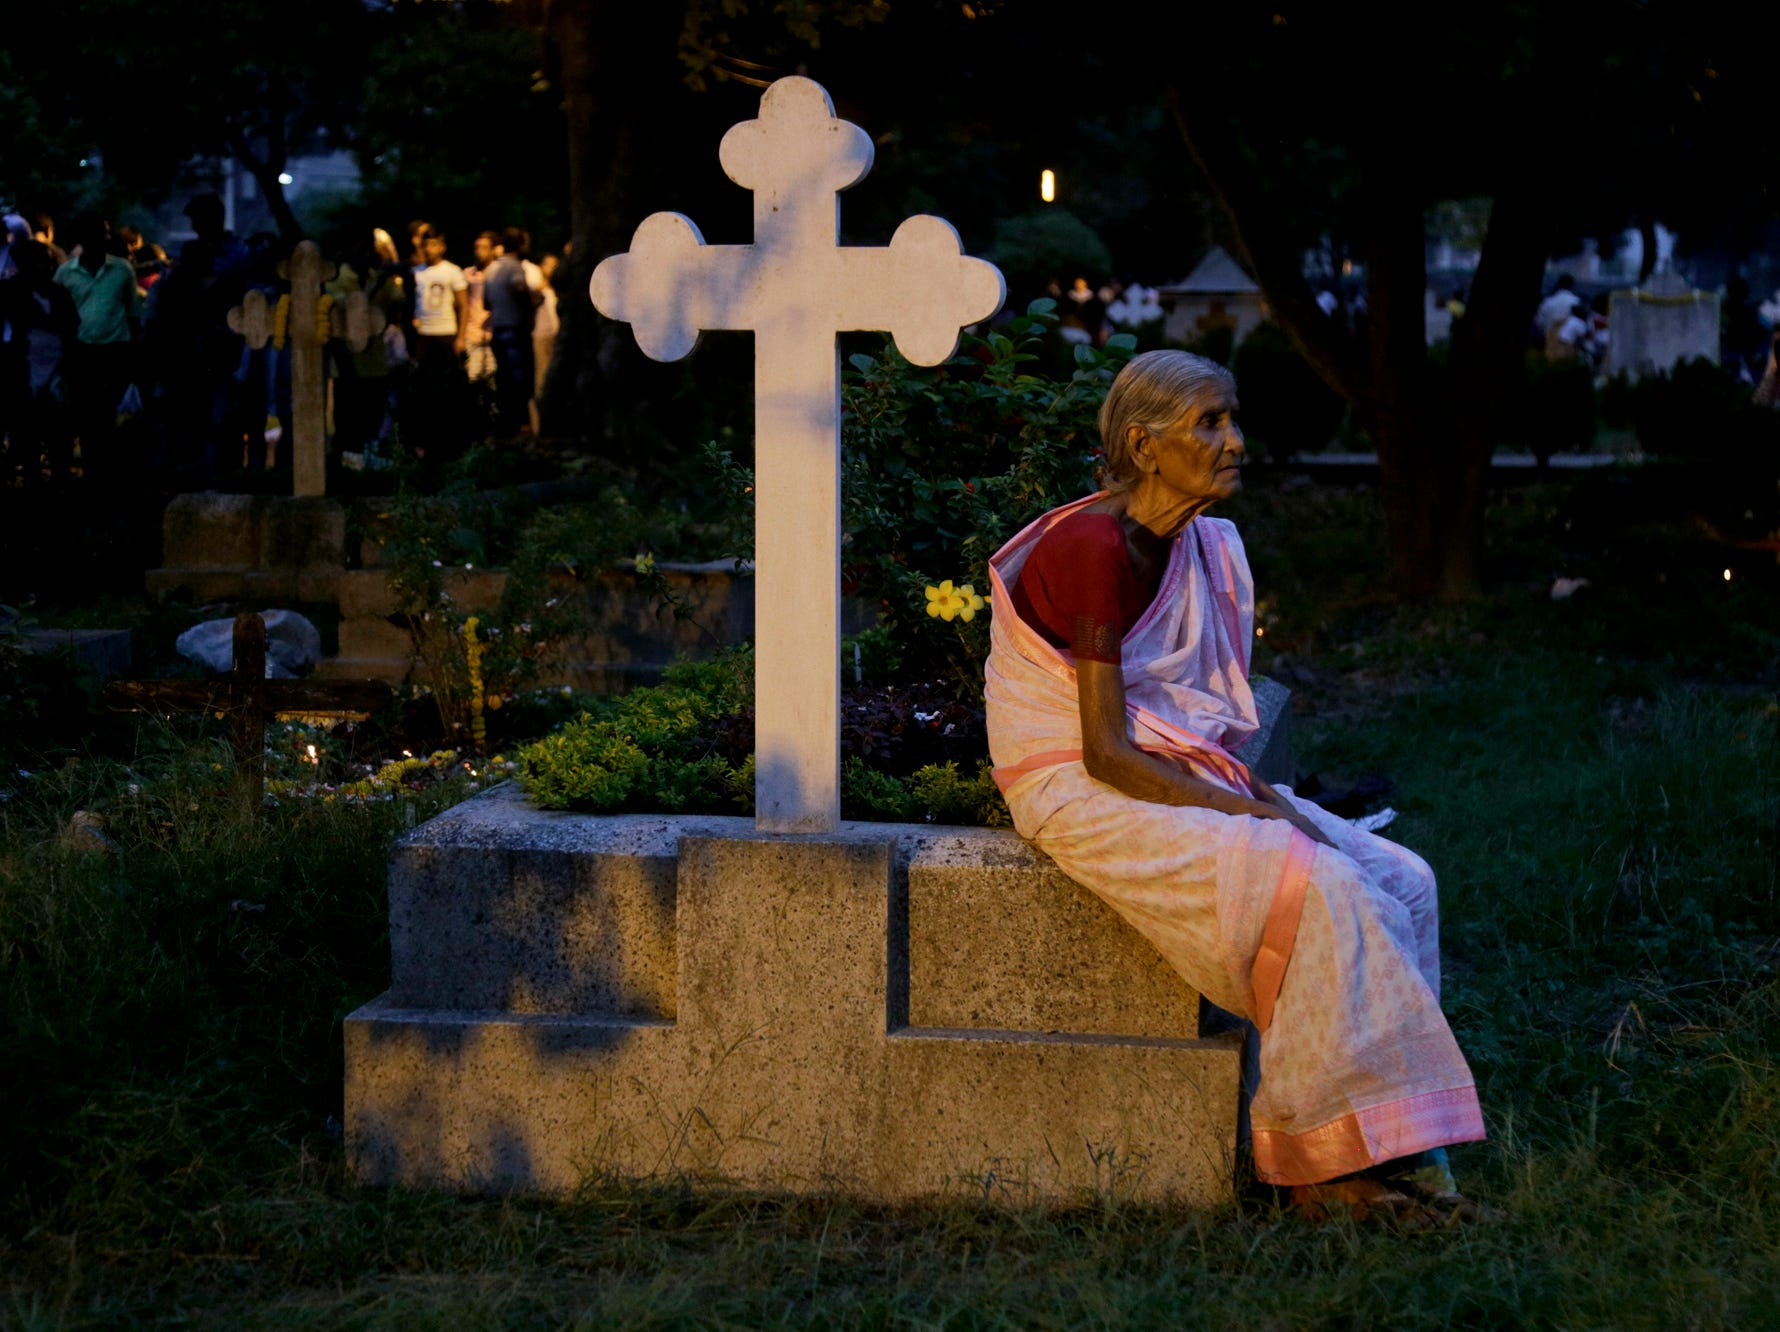 An elderly Indian Christian woman sits on a grave of her relative to pay tribute on All Souls Day in Kolkata, India, Friday, Nov. 2, 2018. The day honors the dead as friends and families gather in cemeteries to decorate graves of loved ones with candles and flowers and offer prayers. (AP Photo/Bikas Das)